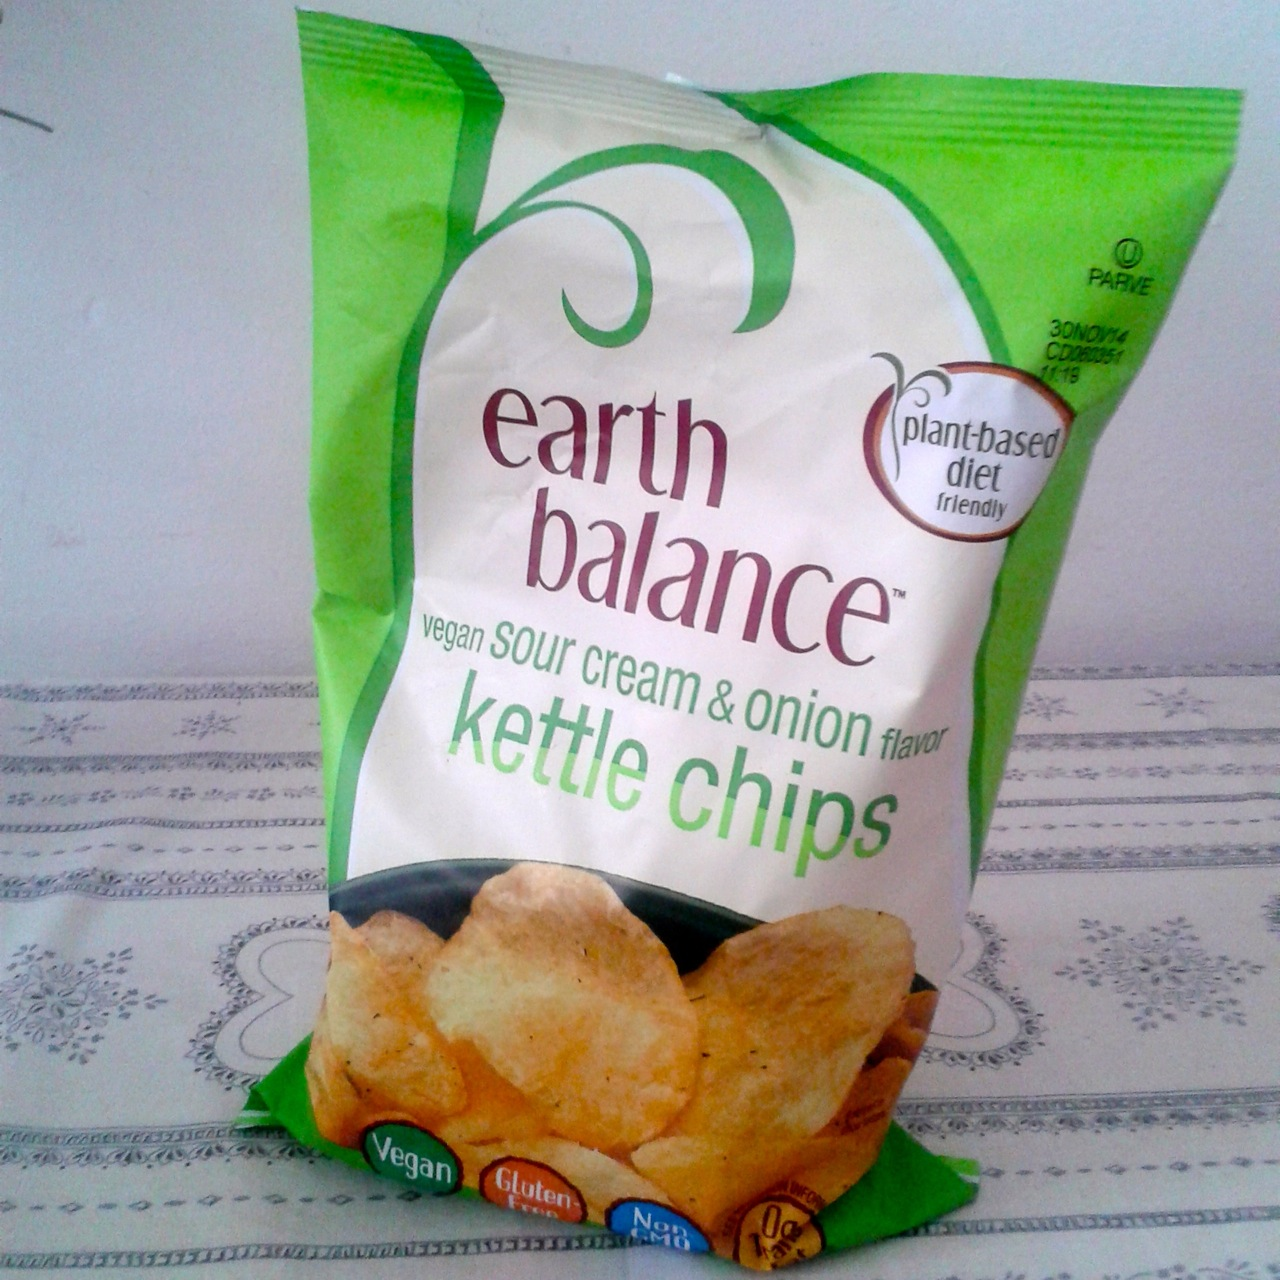 https://i1.wp.com/fatgayvegan.com/wp-content/uploads/2014/10/kettle-chips.jpg?fit=1280%2C1280